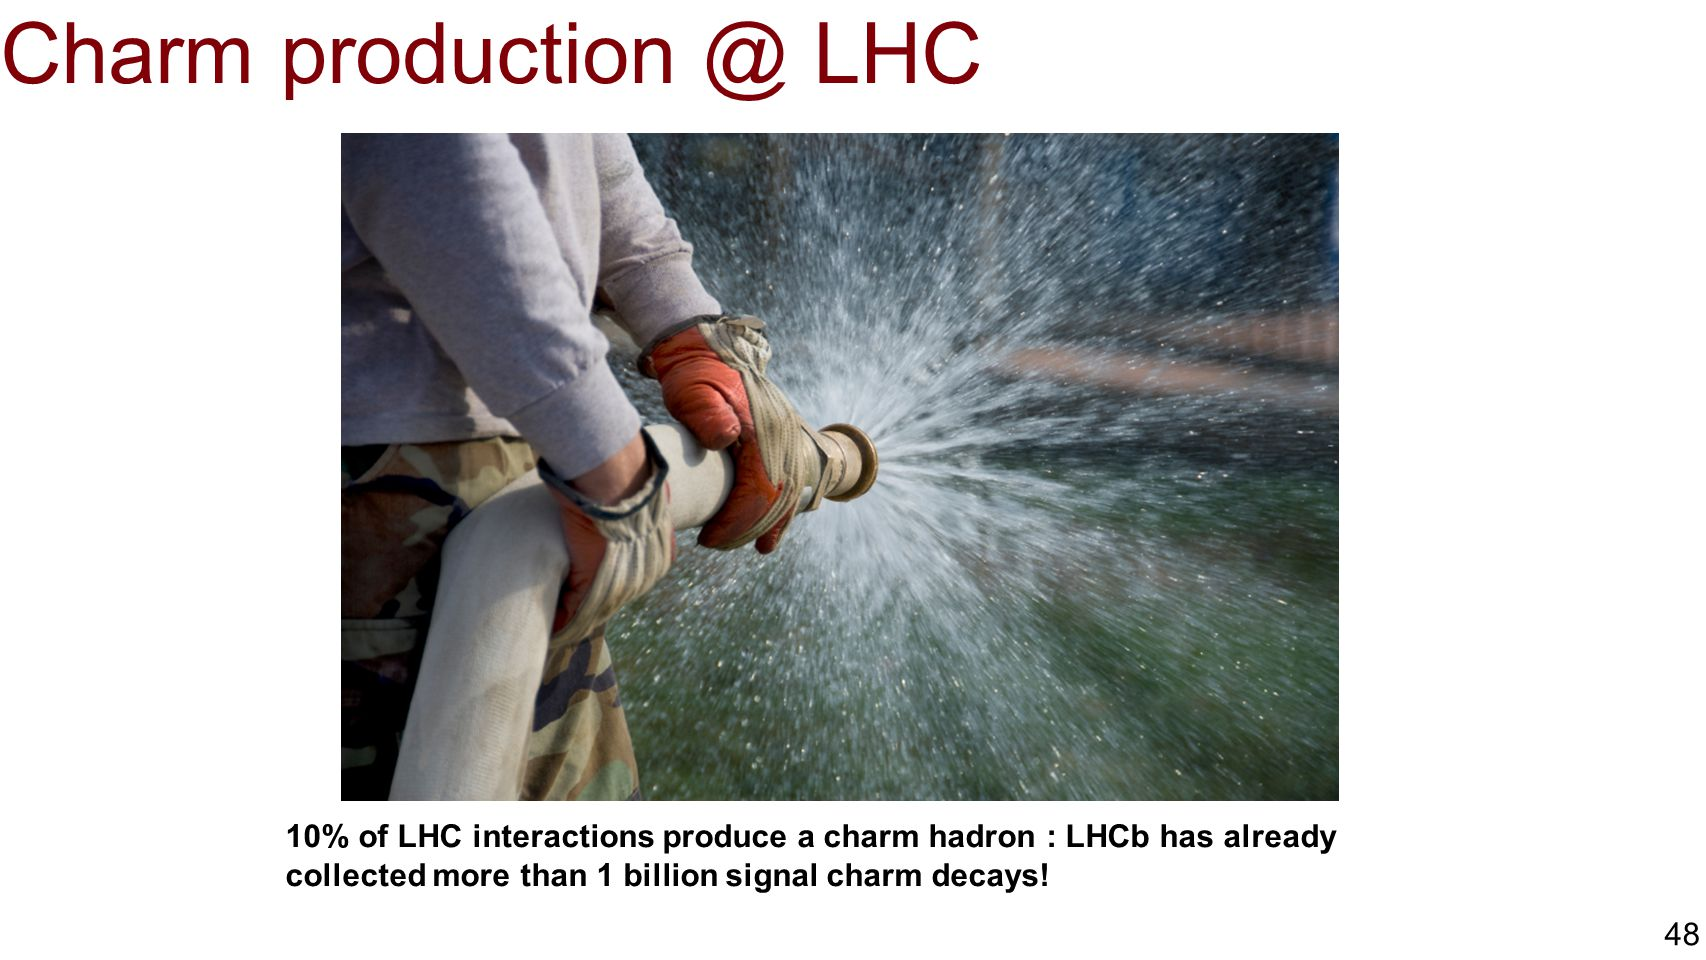 Charm production @ LHC 10% of LHC interactions produce a charm hadron : LHCb has already collected more than 1 billion signal charm decays!